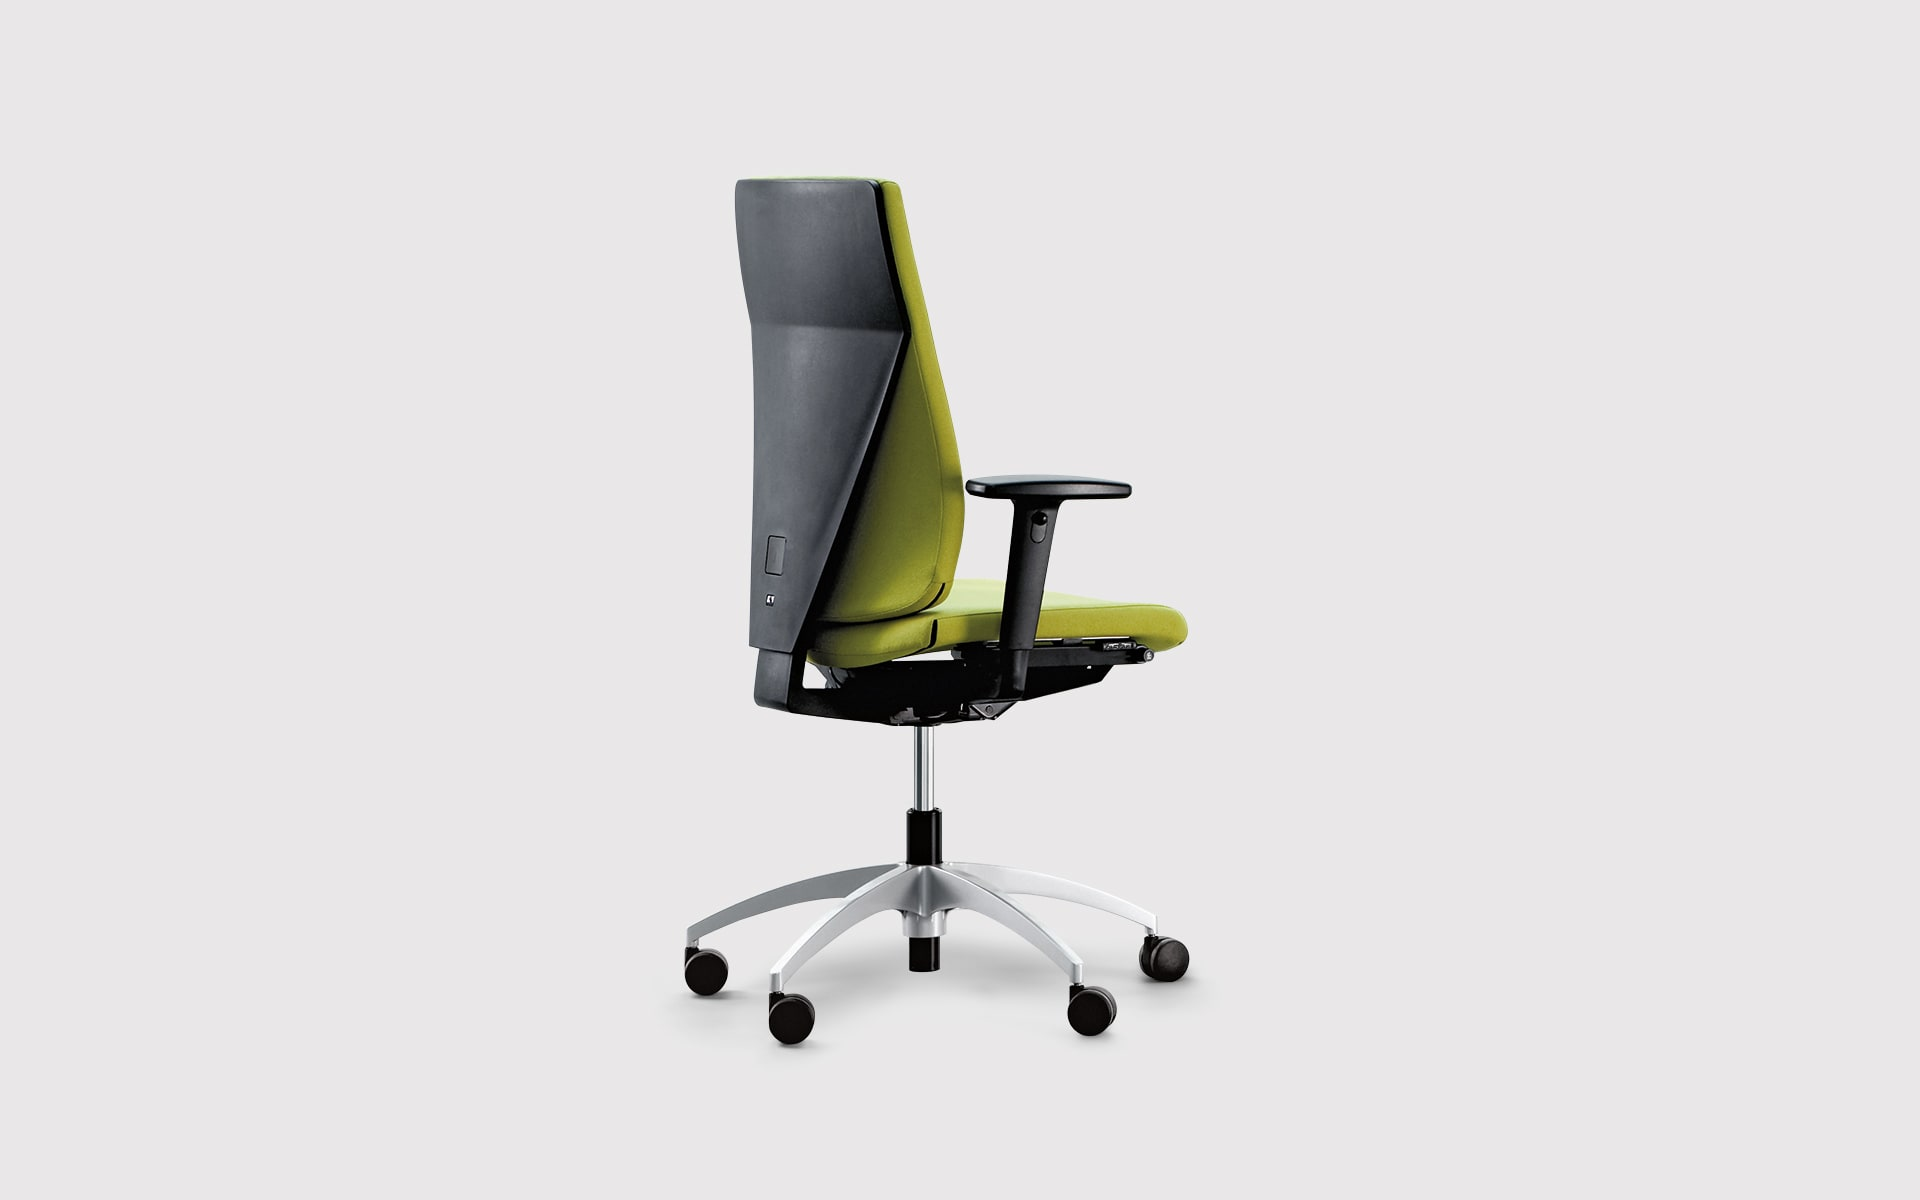 K+N Signeta swivel chair by ITO Design with bright green upholstery